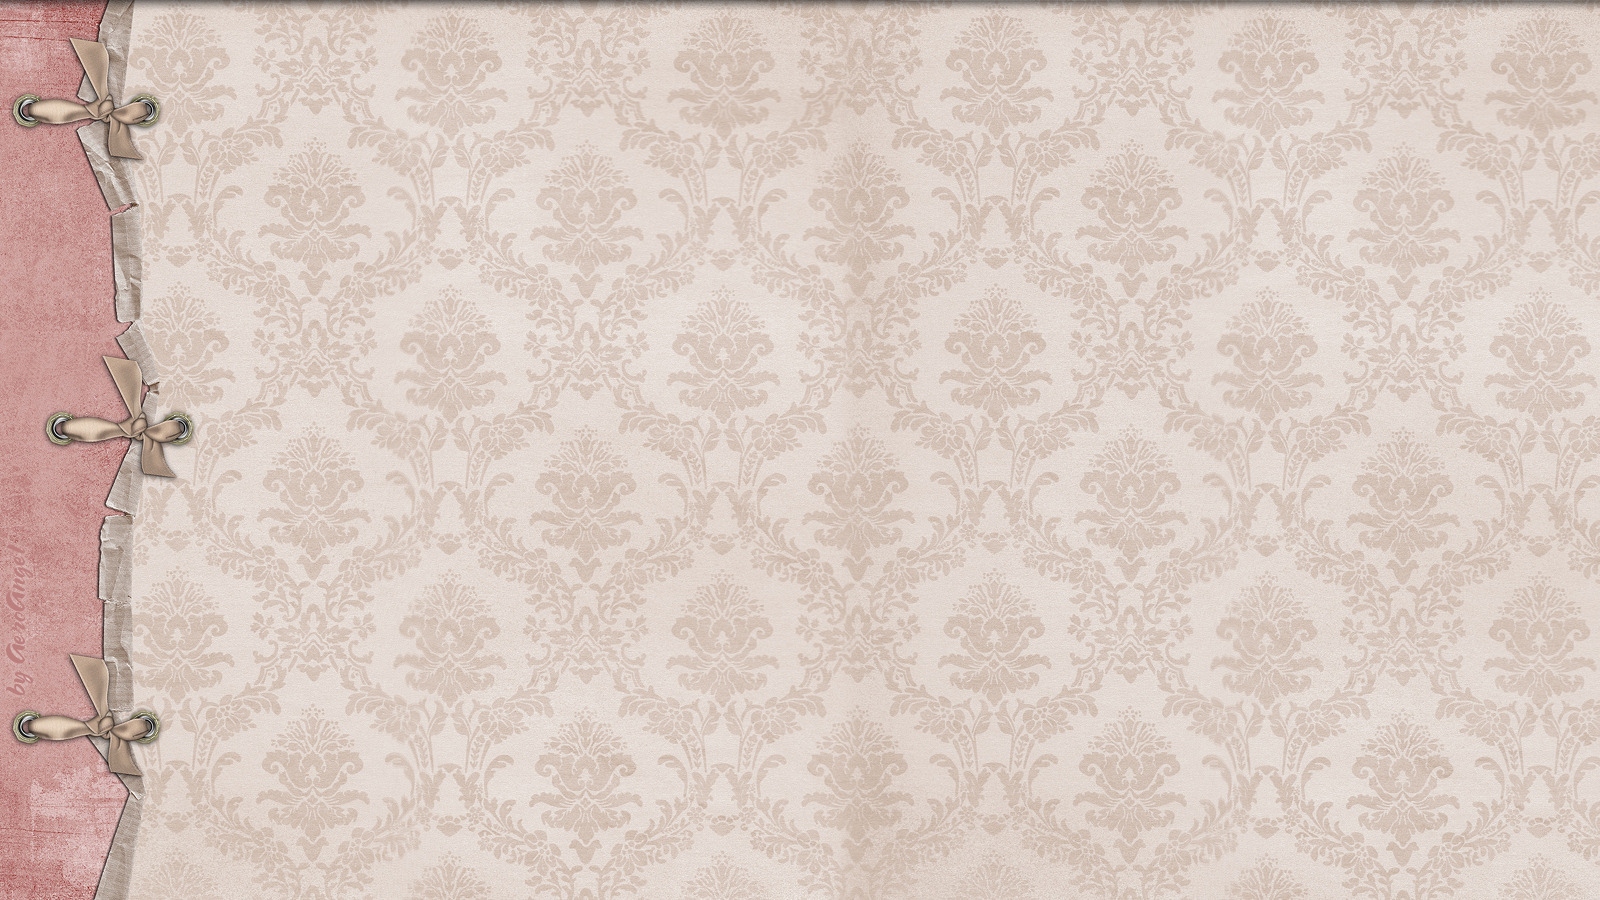 Vintage Love Twitter Backgrounds Vintage Love Twitter Themes 1600x900